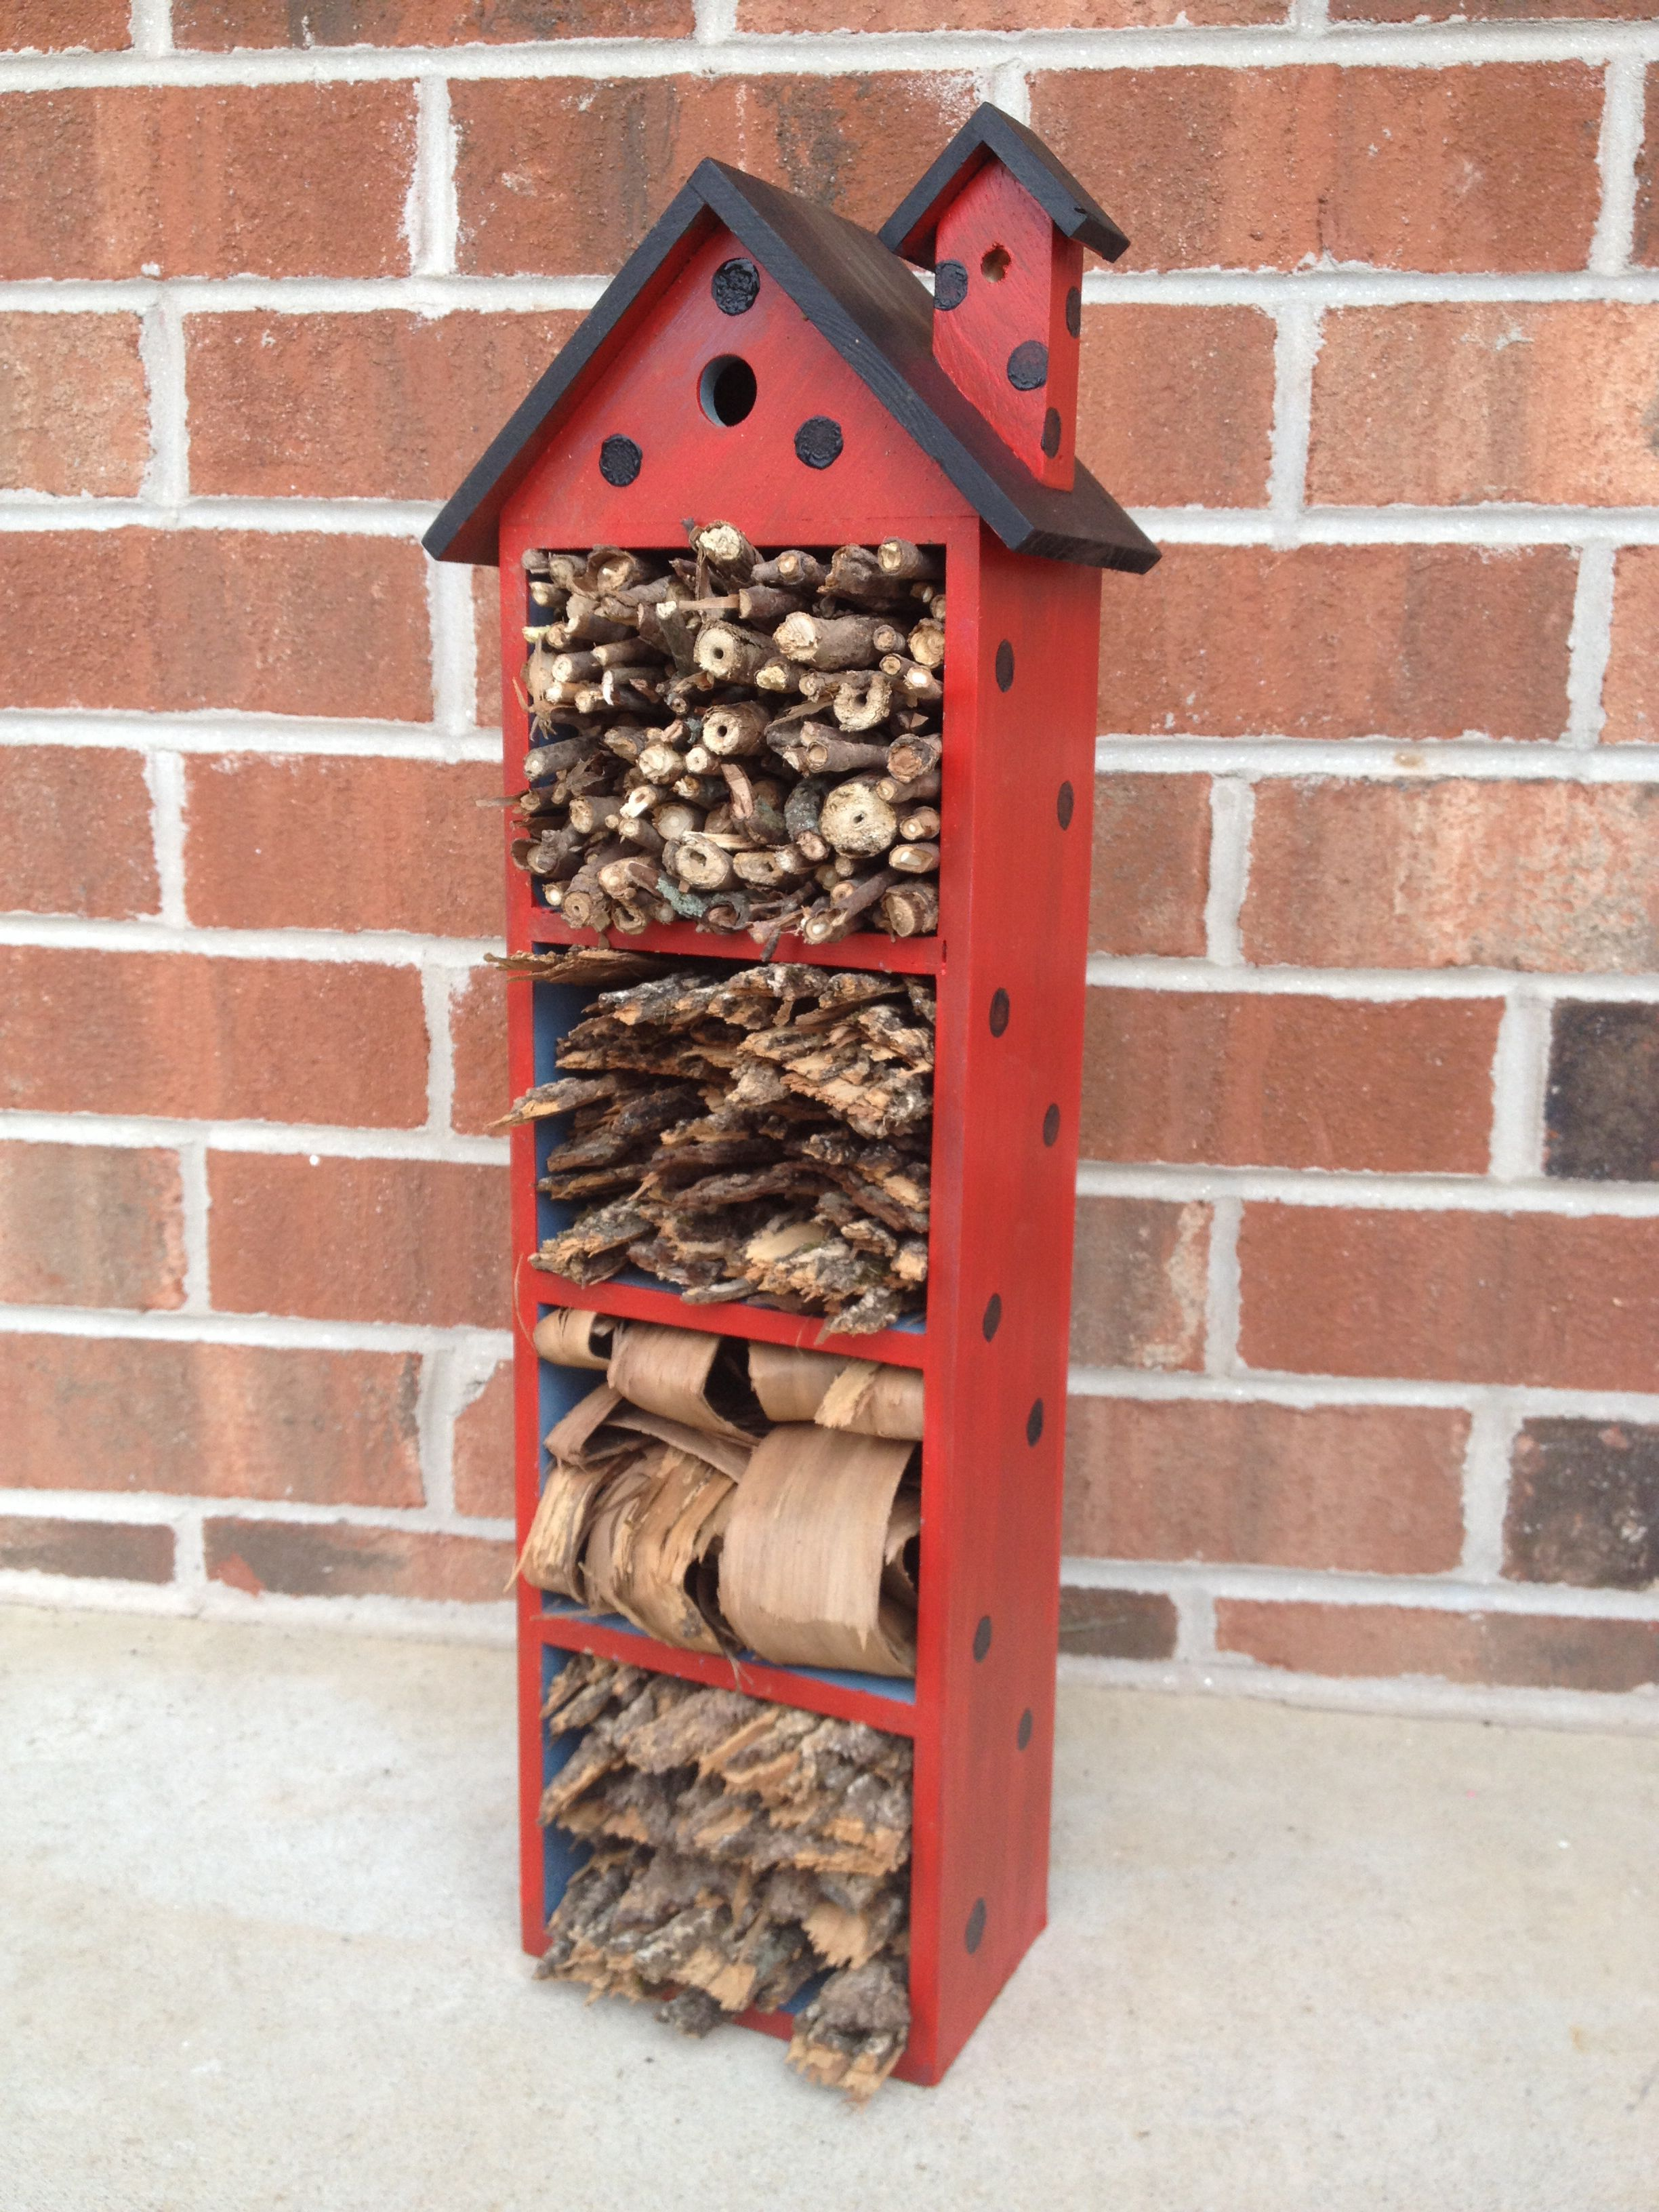 """Ladybug house that I made for our garden.  The """"house"""" is actually a mug holder that I found at an antique shop. I painted it then filled the compartments with sticks and bark.....ladybugs love to make these tight spaces their homes."""